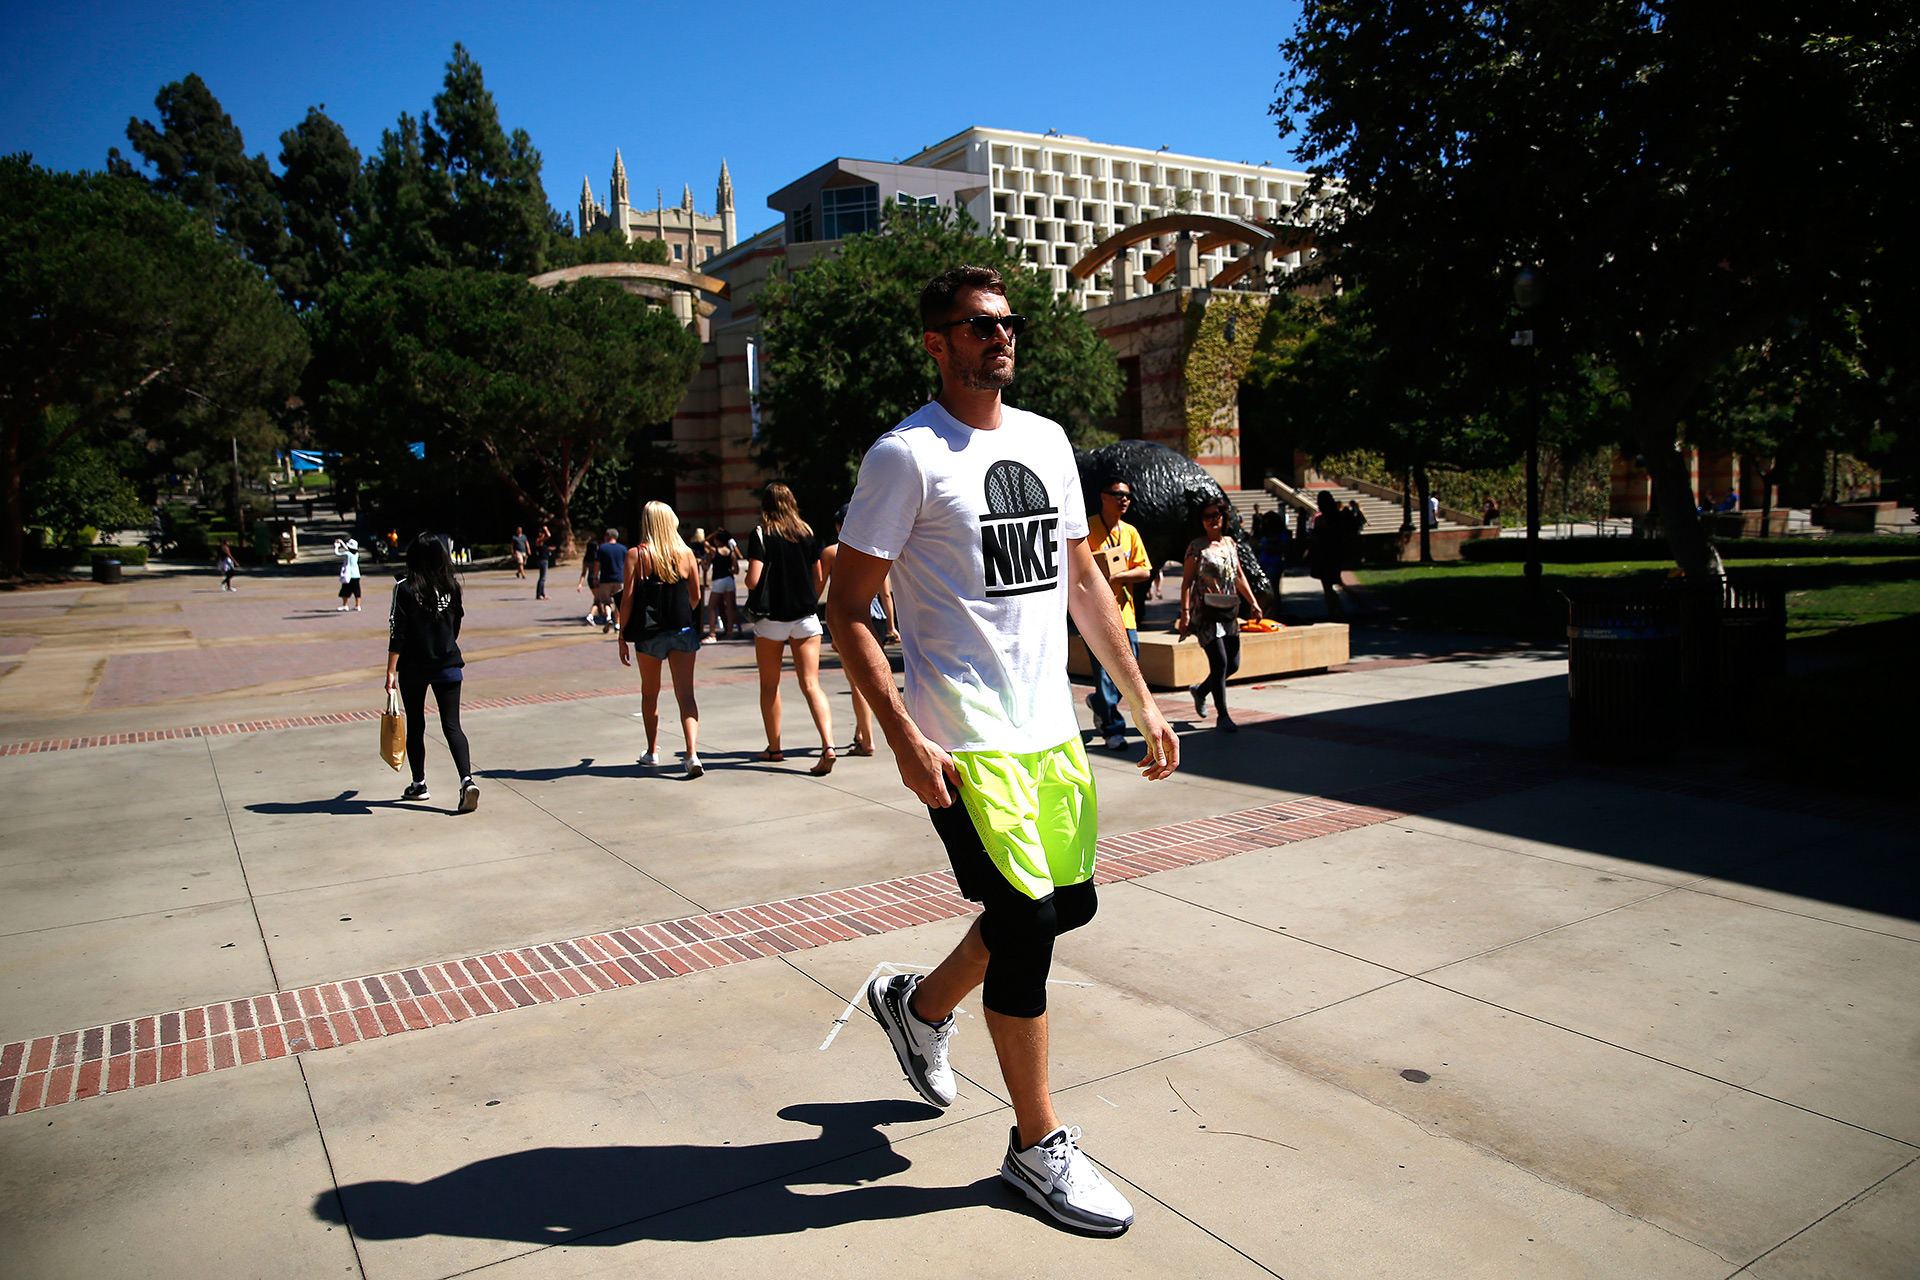 091816_JJ_KLove_UCLA_245-copy